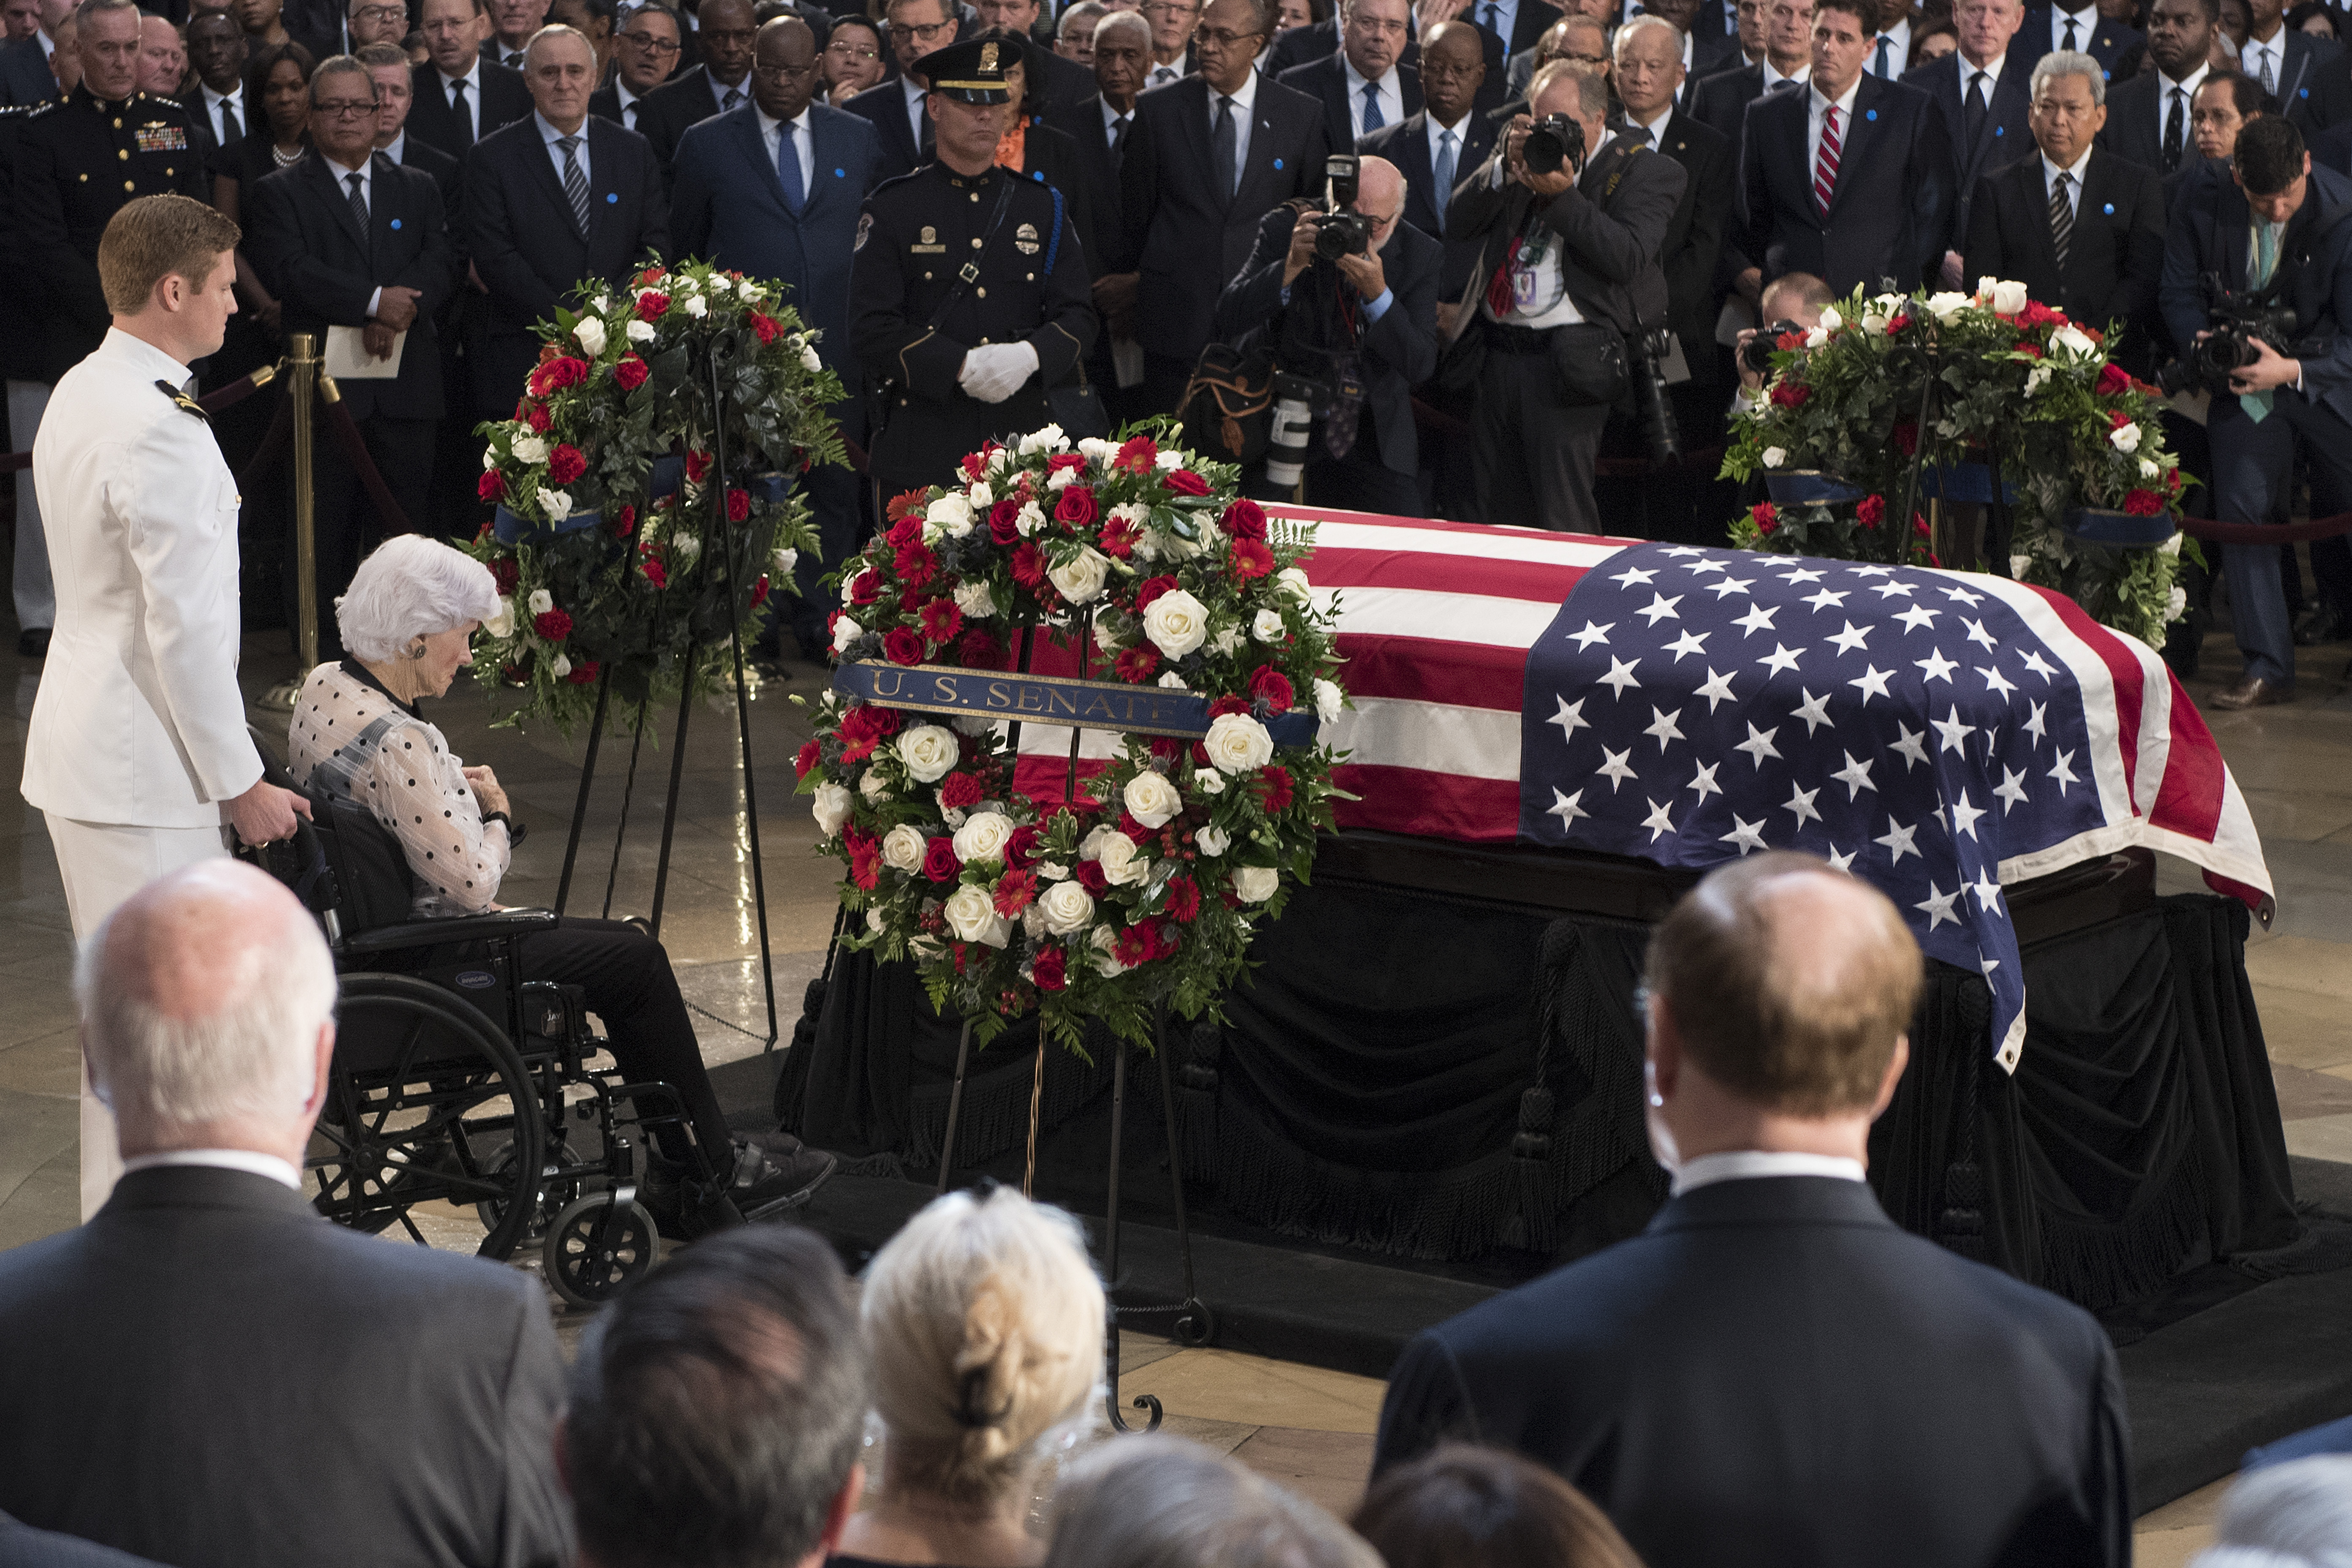 Roberta McCain (2nd L), the 106-year-old mother of John McCain, pays her respects to the flag-draped casket bearing the remains of her son, who lived and worked in Congress over four decades, in the U.S. Capitol rotunda for a farewell ceremony and public visitation, on August 31, 2018 in Washington, DC. The late senator died August 25 at the age of 81 after a long battle with brain cancer. He will lie in state at the U.S. Capitol, a rare honor bestowed on only 31 people in the past 166 years. Sen. McCain will be buried at his final resting place at the U.S. Naval Academy.